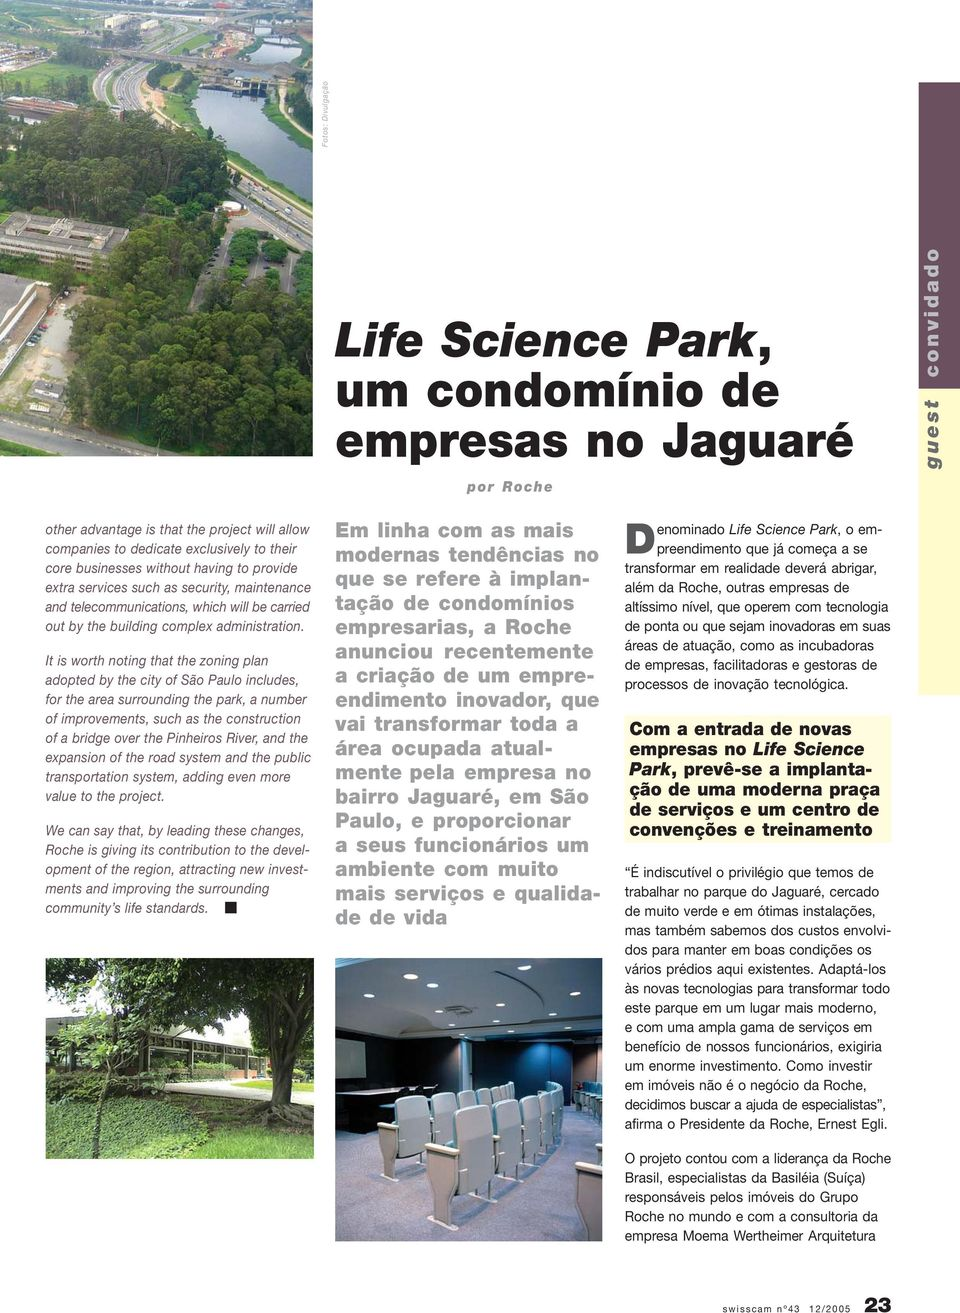 It is worth noting that the zoning plan adopted by the city of São Paulo includes, for the area surrounding the park, a number of improvements, such as the construction of a bridge over the Pinheiros